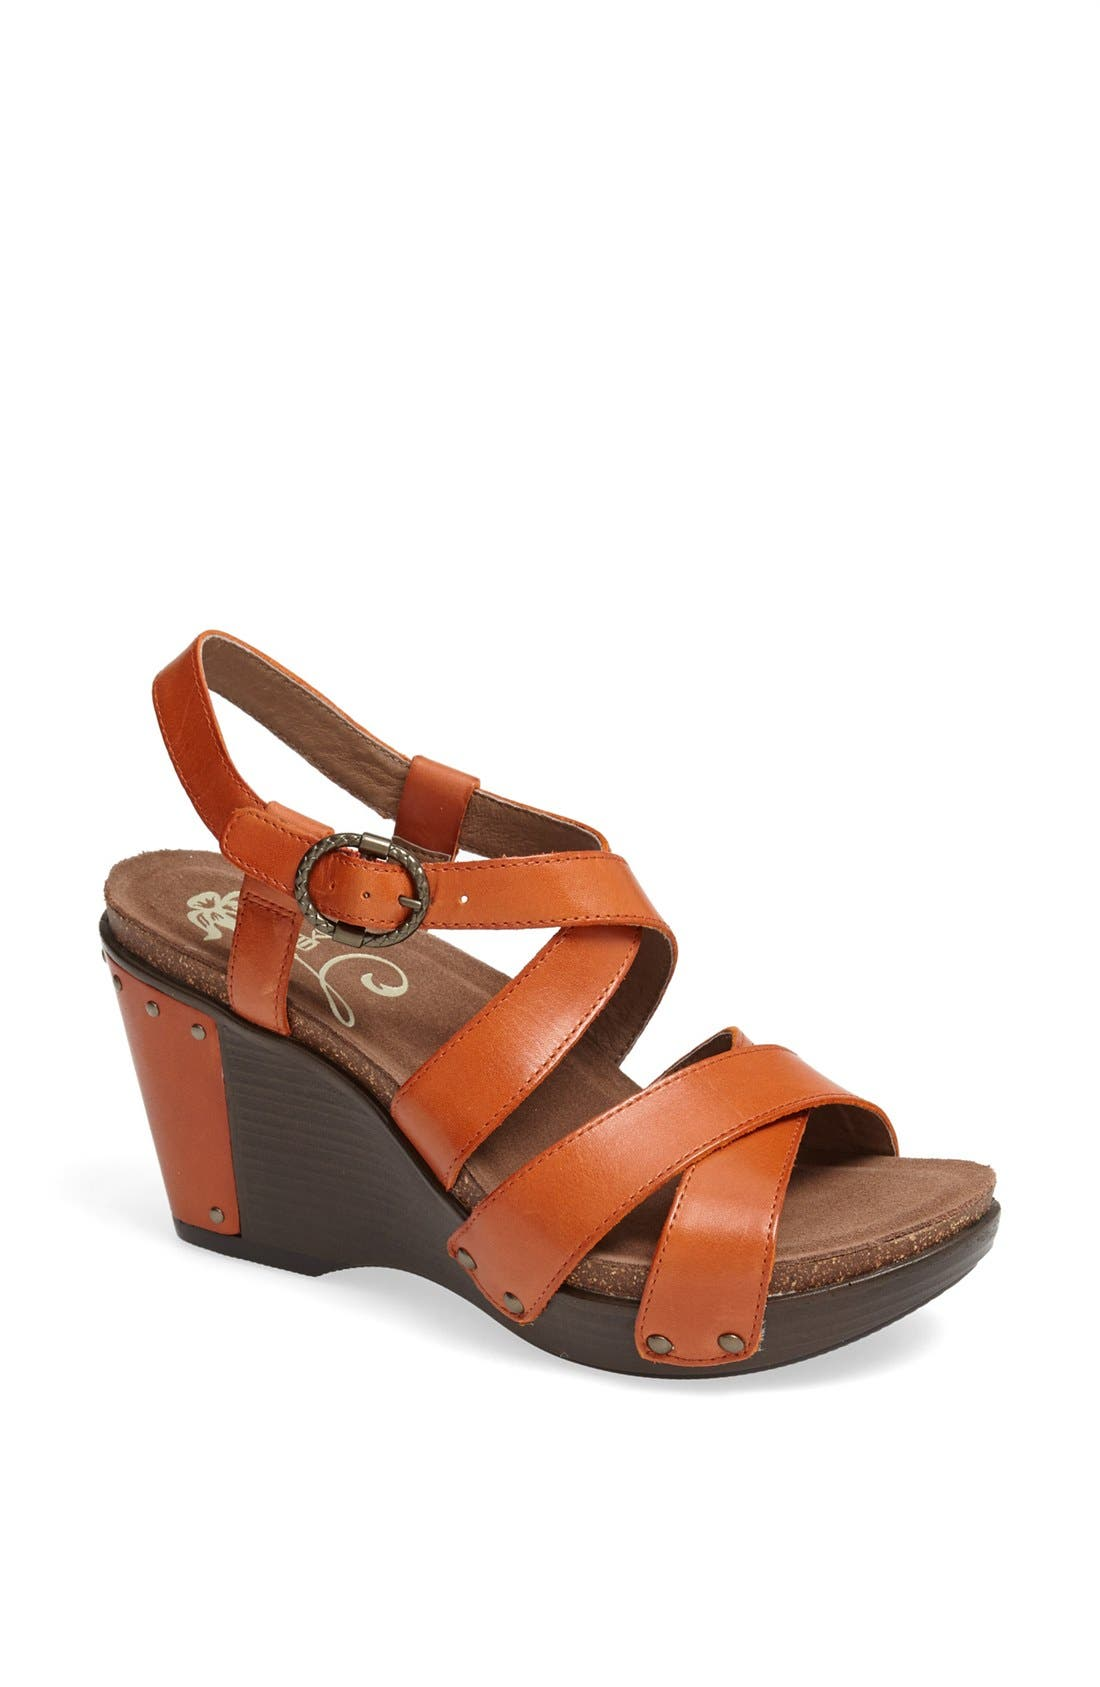 Alternate Image 1 Selected - Dansko 'Frida' Sandal